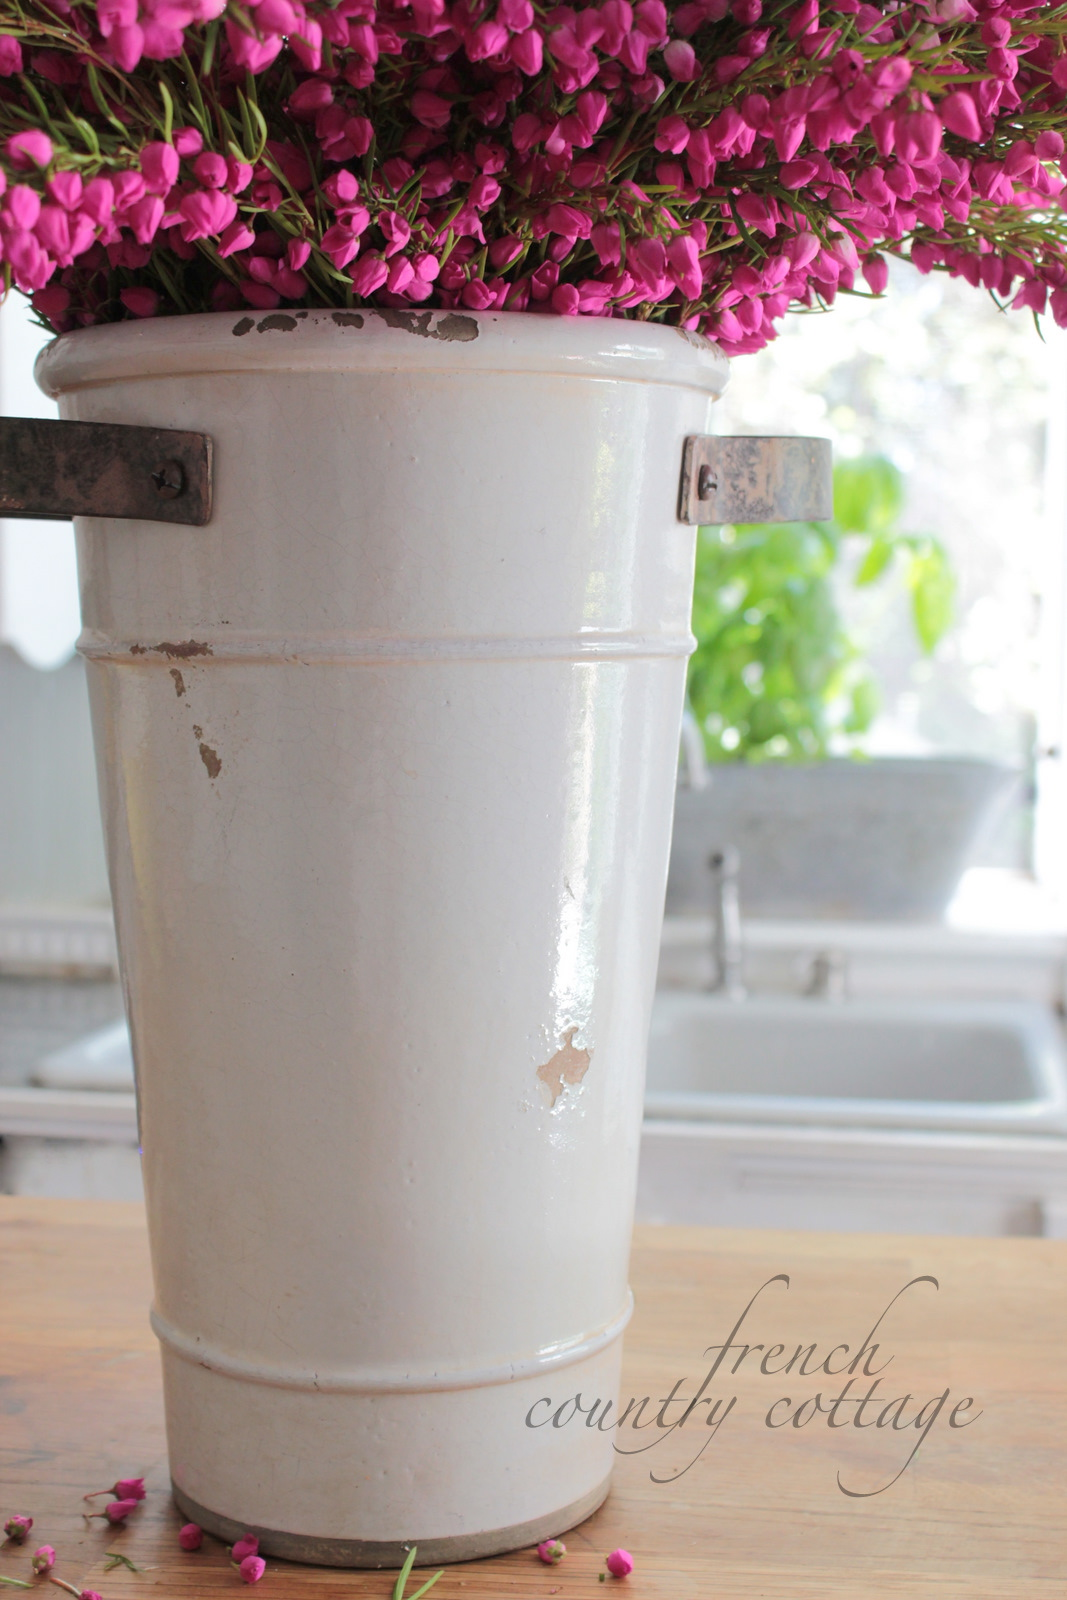 White flower bucket french country cottage even though its brand new mightylinksfo